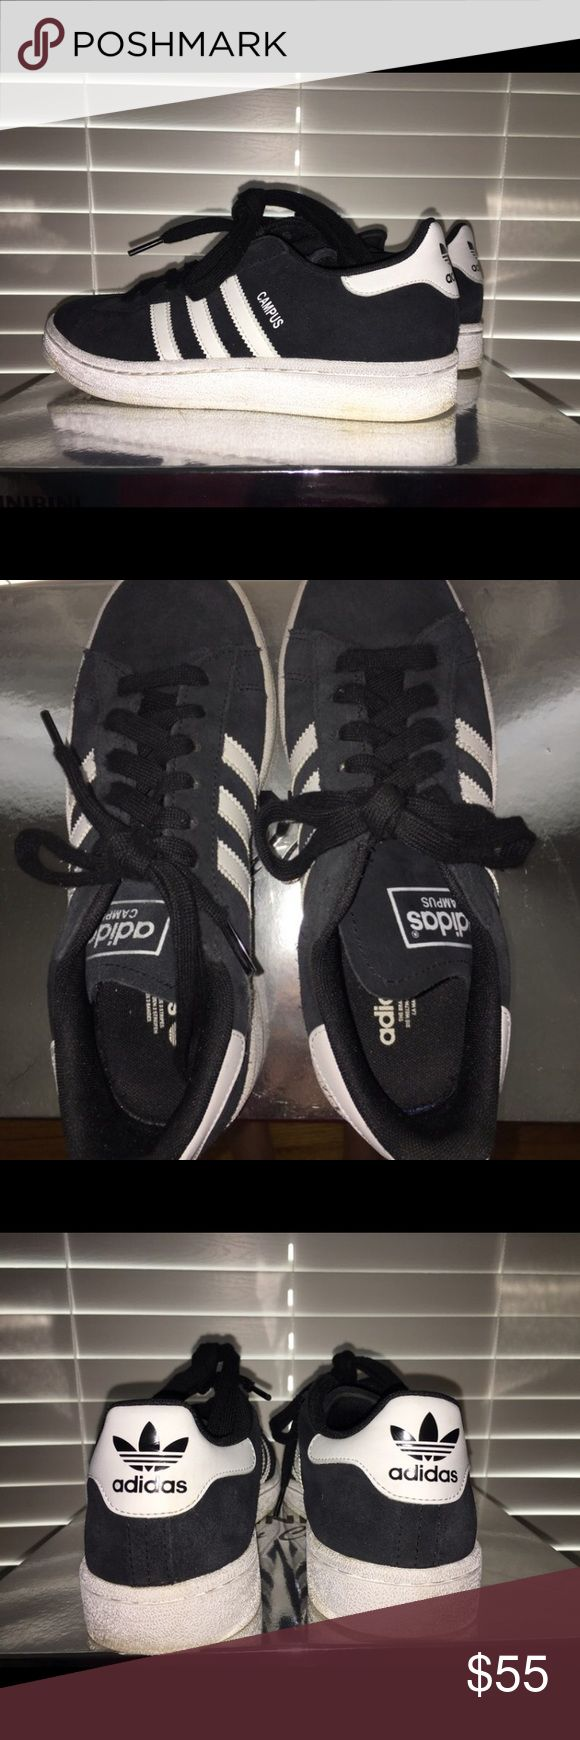 Adidas Campus Sneaker Very good condition adidas campus shoes! Great for everyday and super comfortable. Only worn a few times #adidas #adidasshoes #adidascampus #adidassneakers Adidas Shoes Athletic Shoes